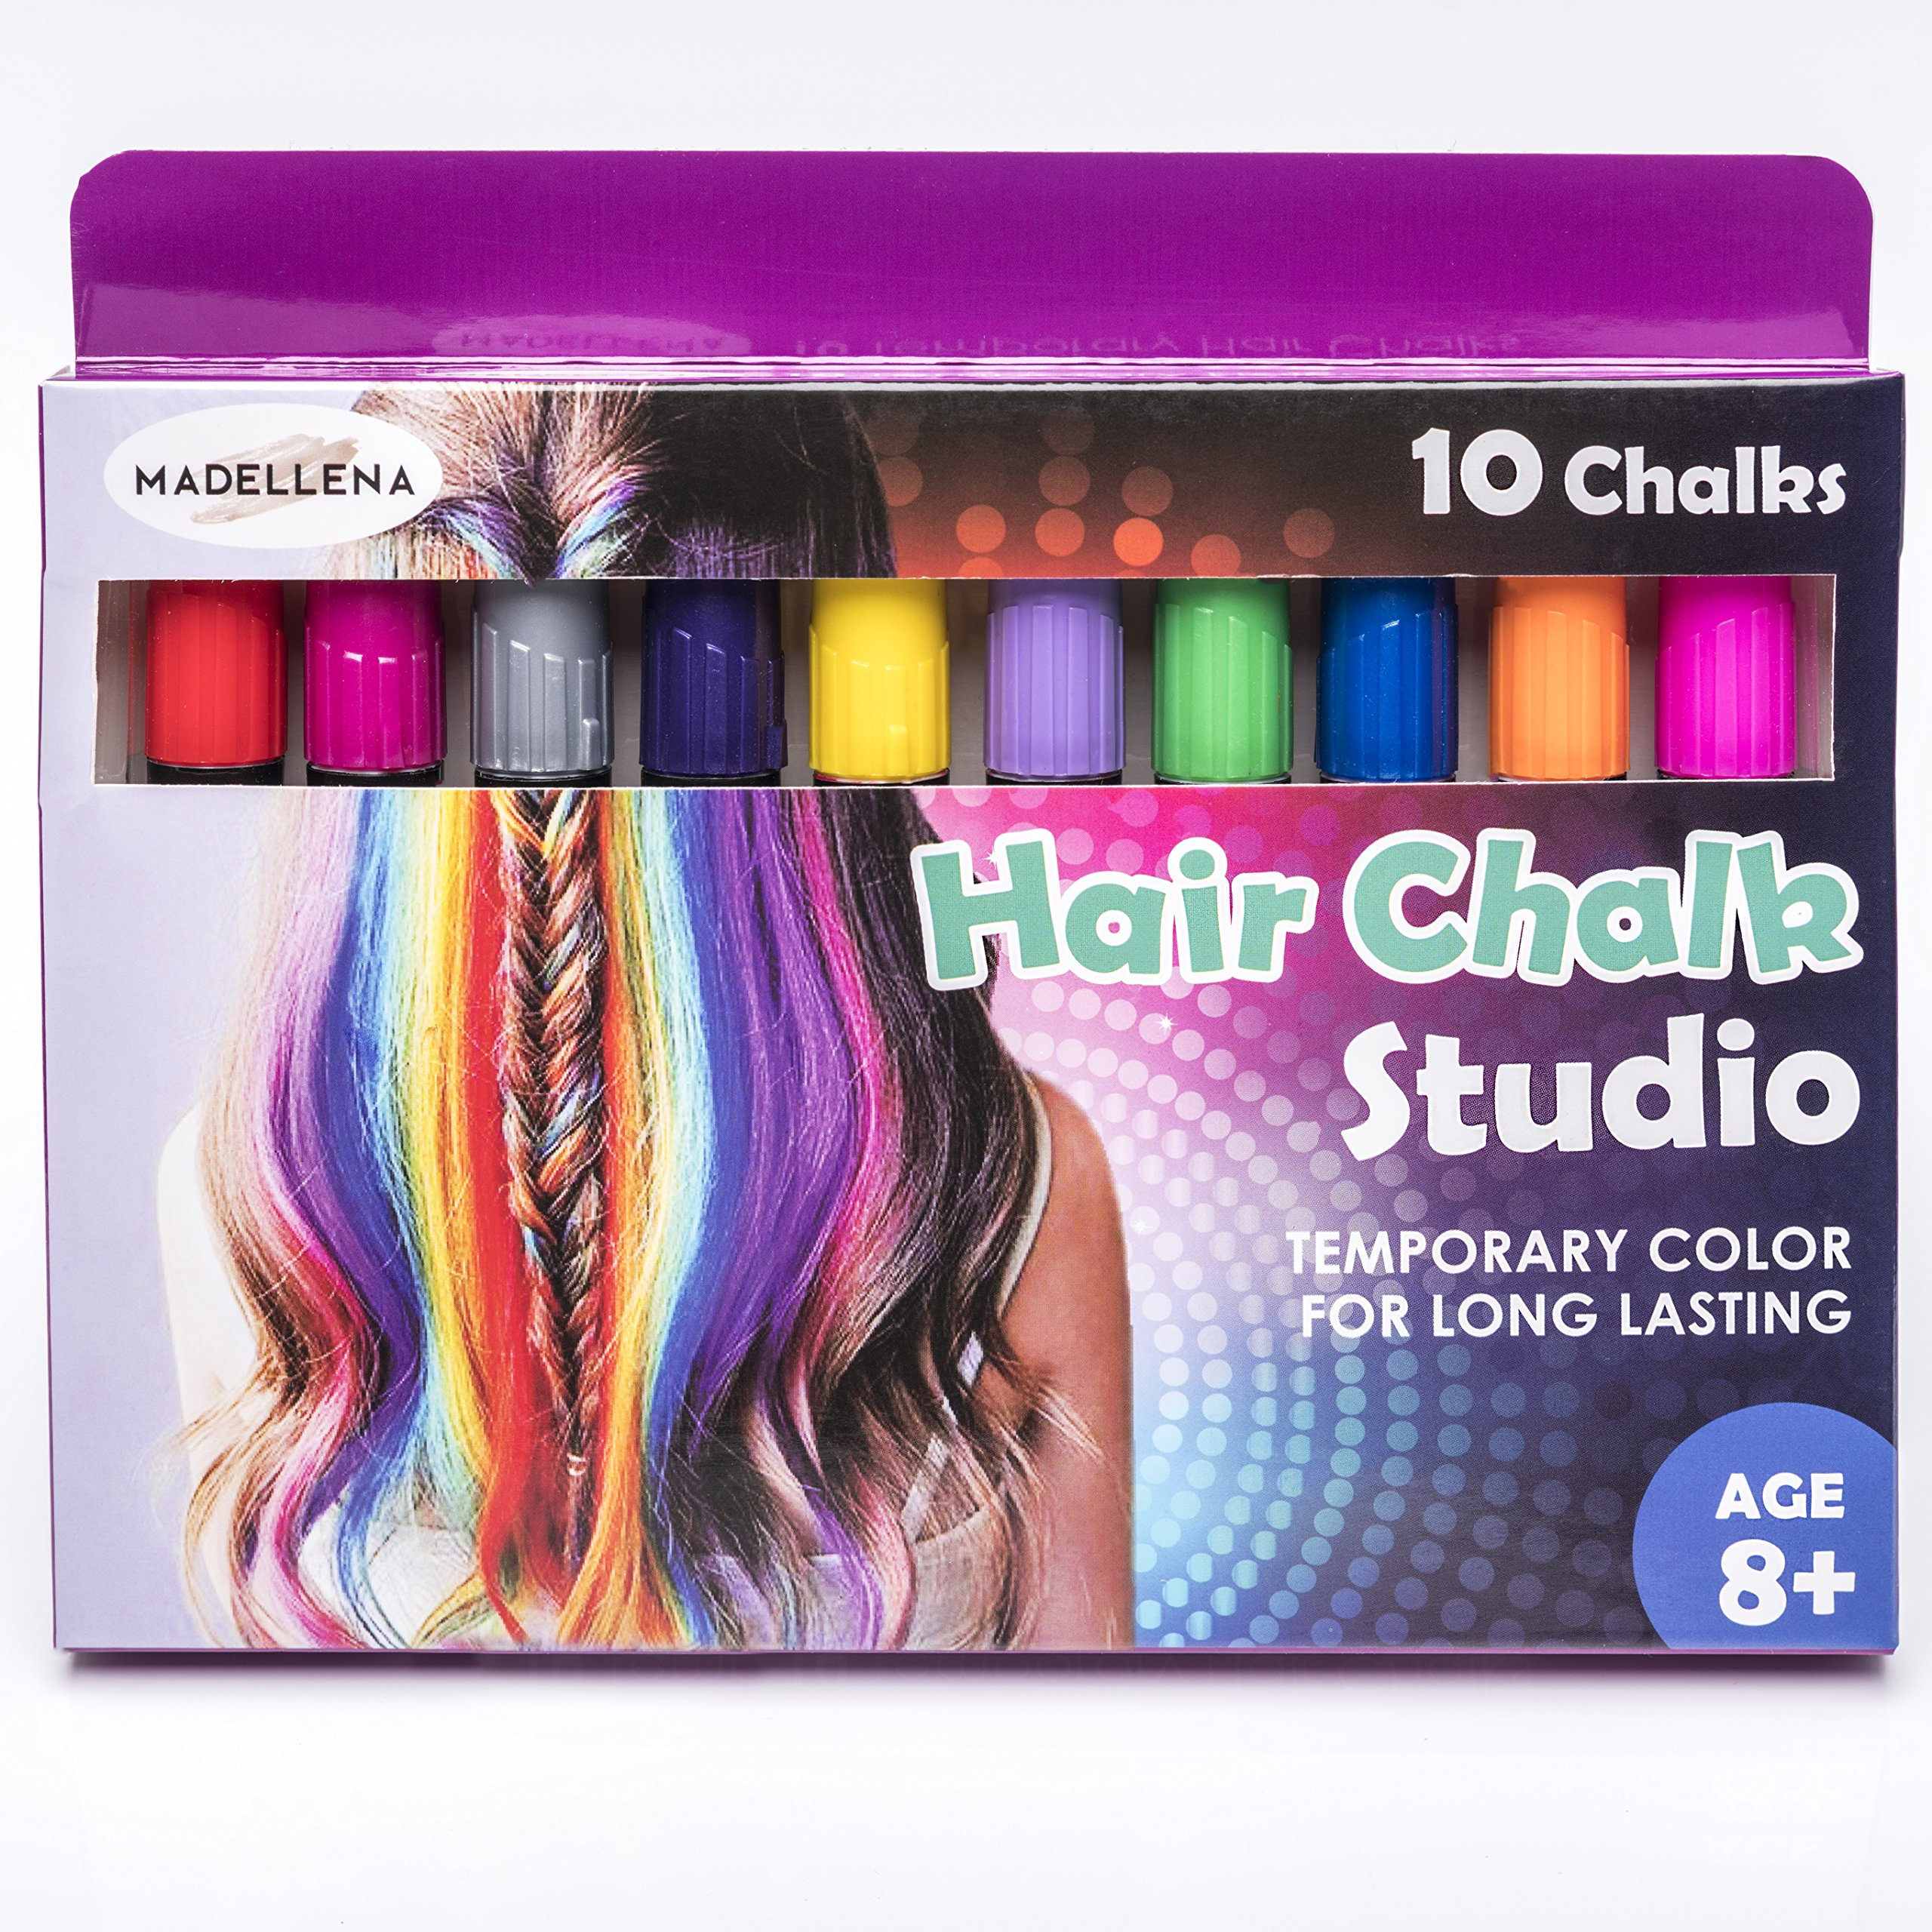 BIRTHDAY GIRLS GIFT HAIR CHALKS: Temporary Color for Girls for All Ages,Hair Chalk Pens, 10 COUNT - 80 Applications Per Stick, Makes a Great Birthday Gifts Present For Girls Age 4 5 6 7 8 9 10